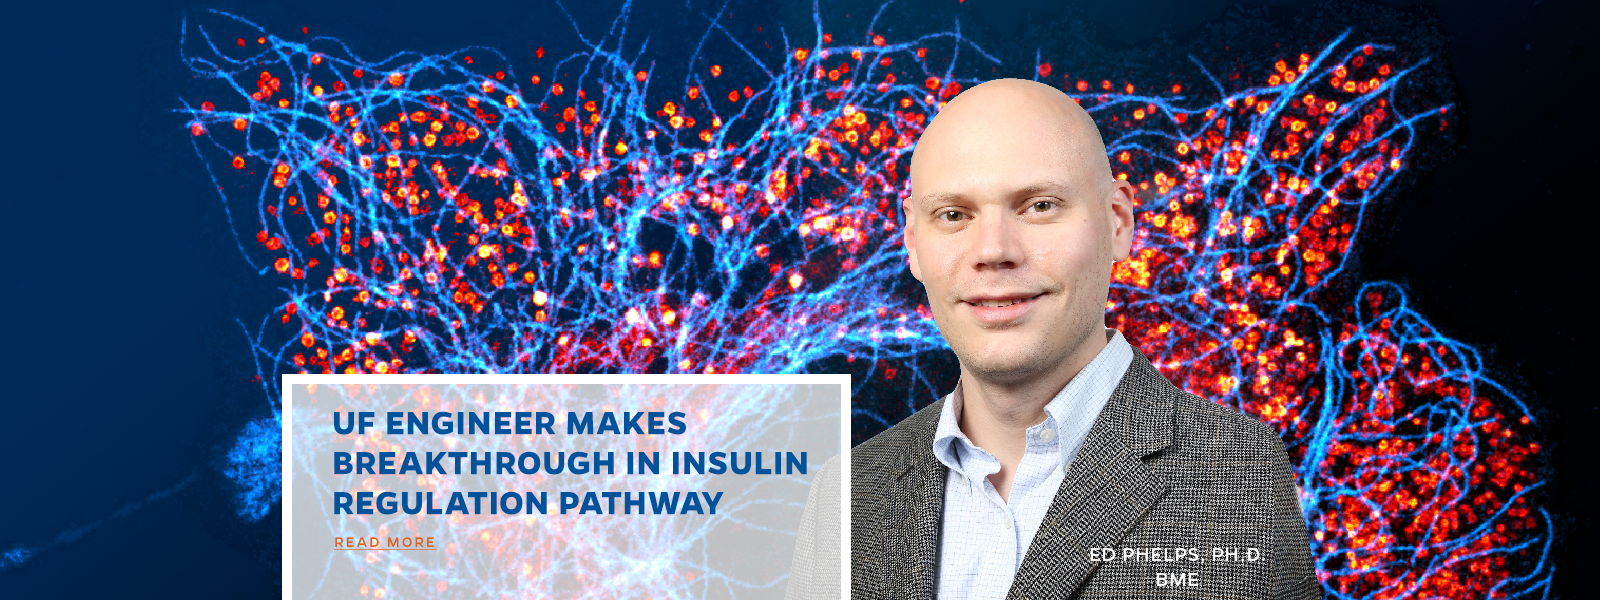 UF Engineer makes  Breakthrough in insulin regulation pathway